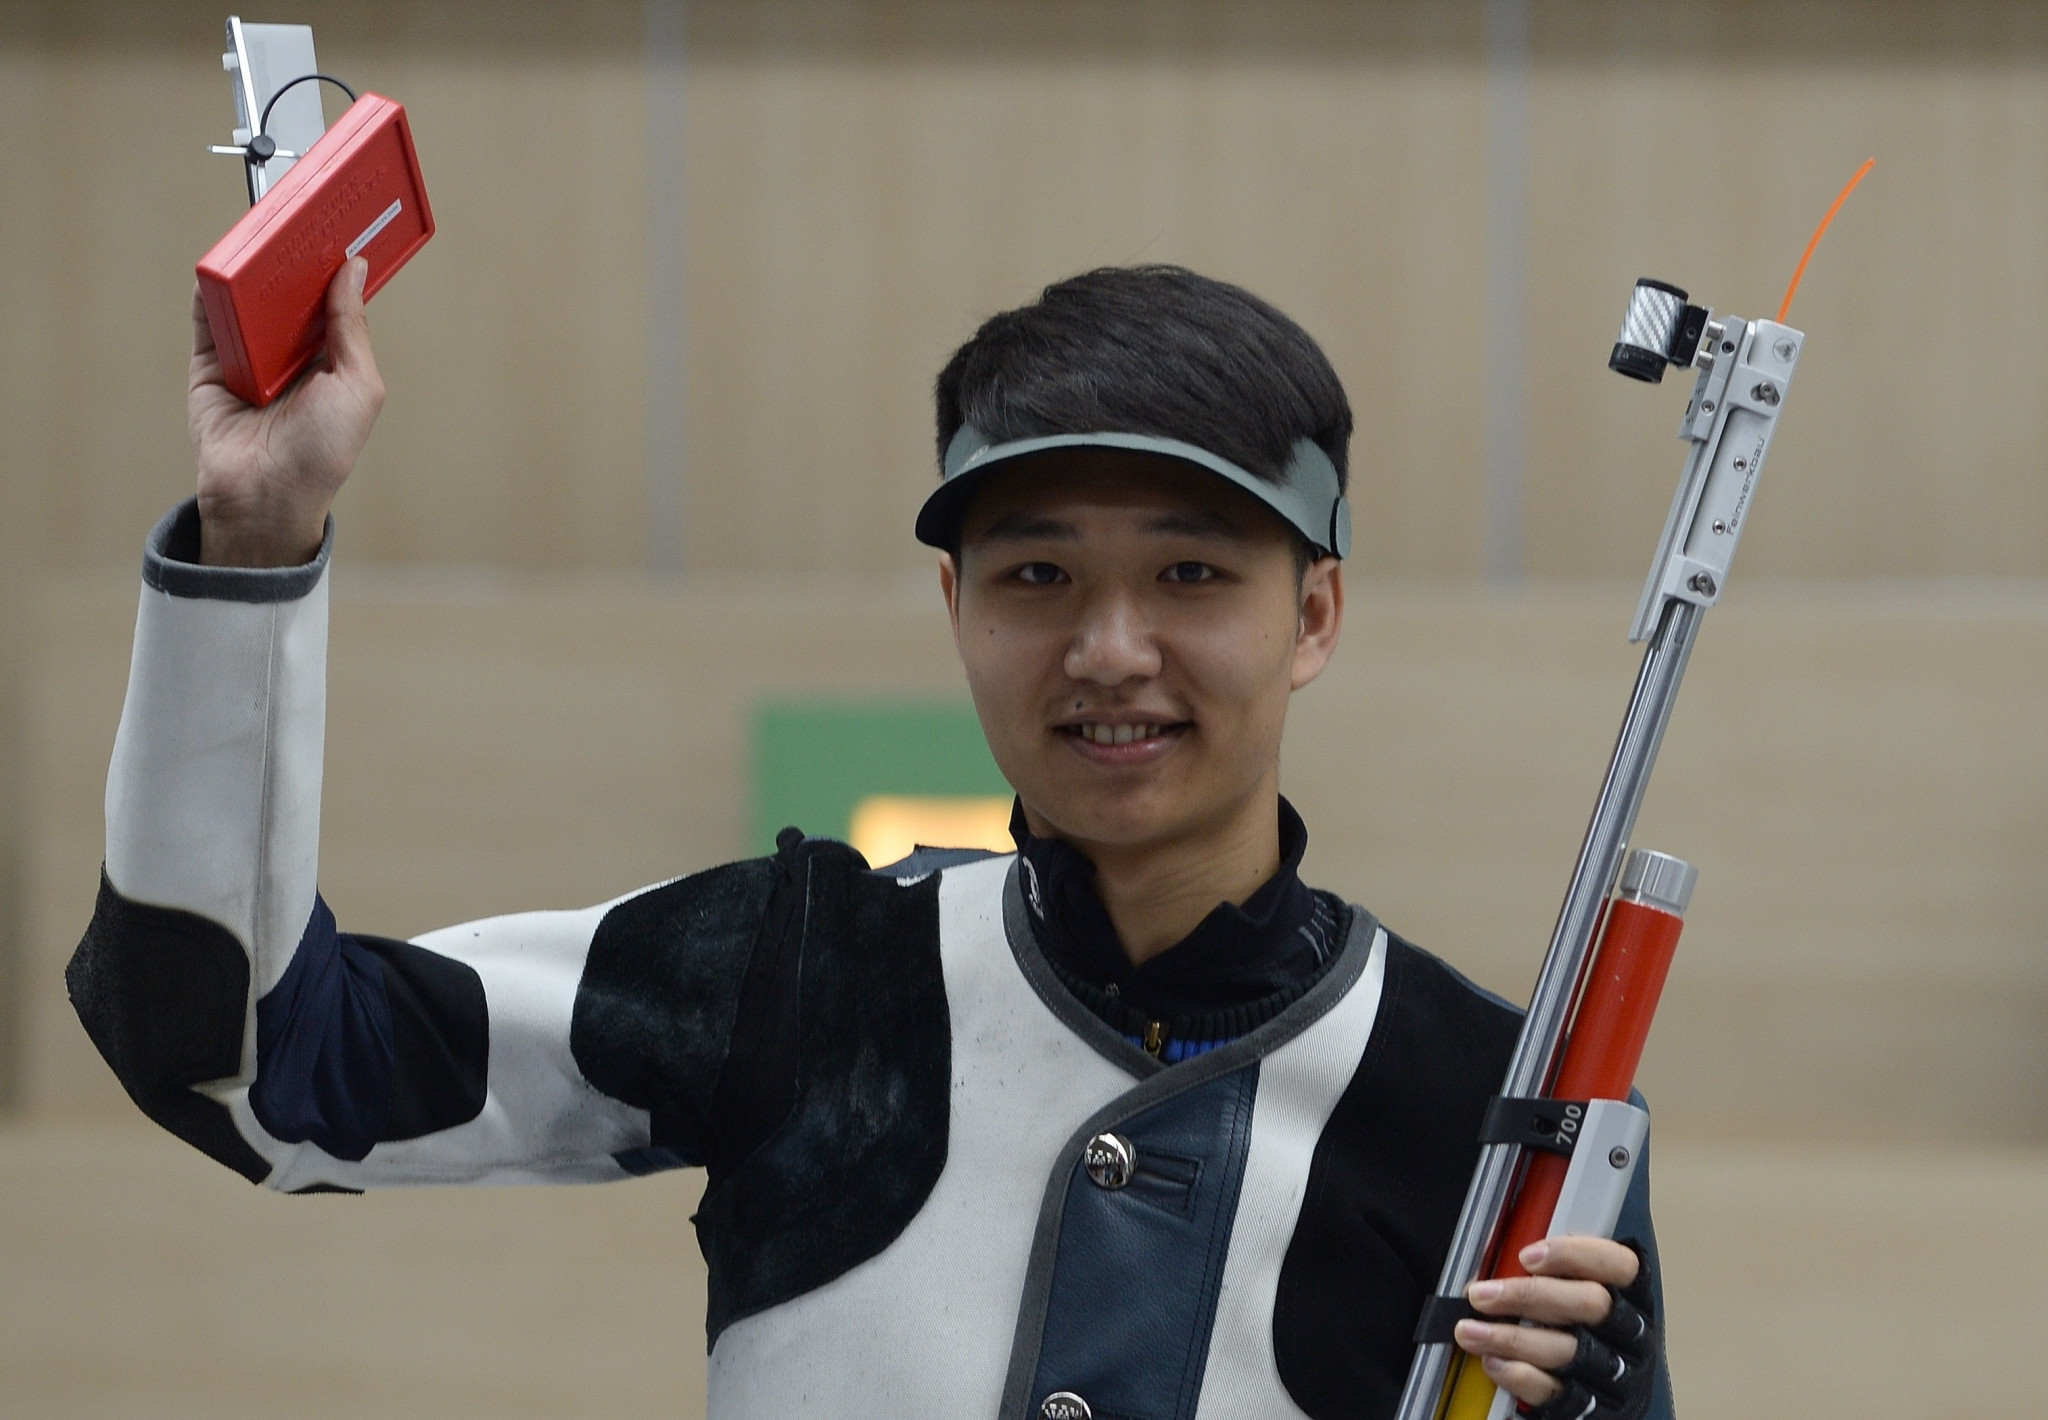 The 2014 Youth Olympic champion Yang Haoran was the winner in the men's 10m air rifle contest ©Getty Images